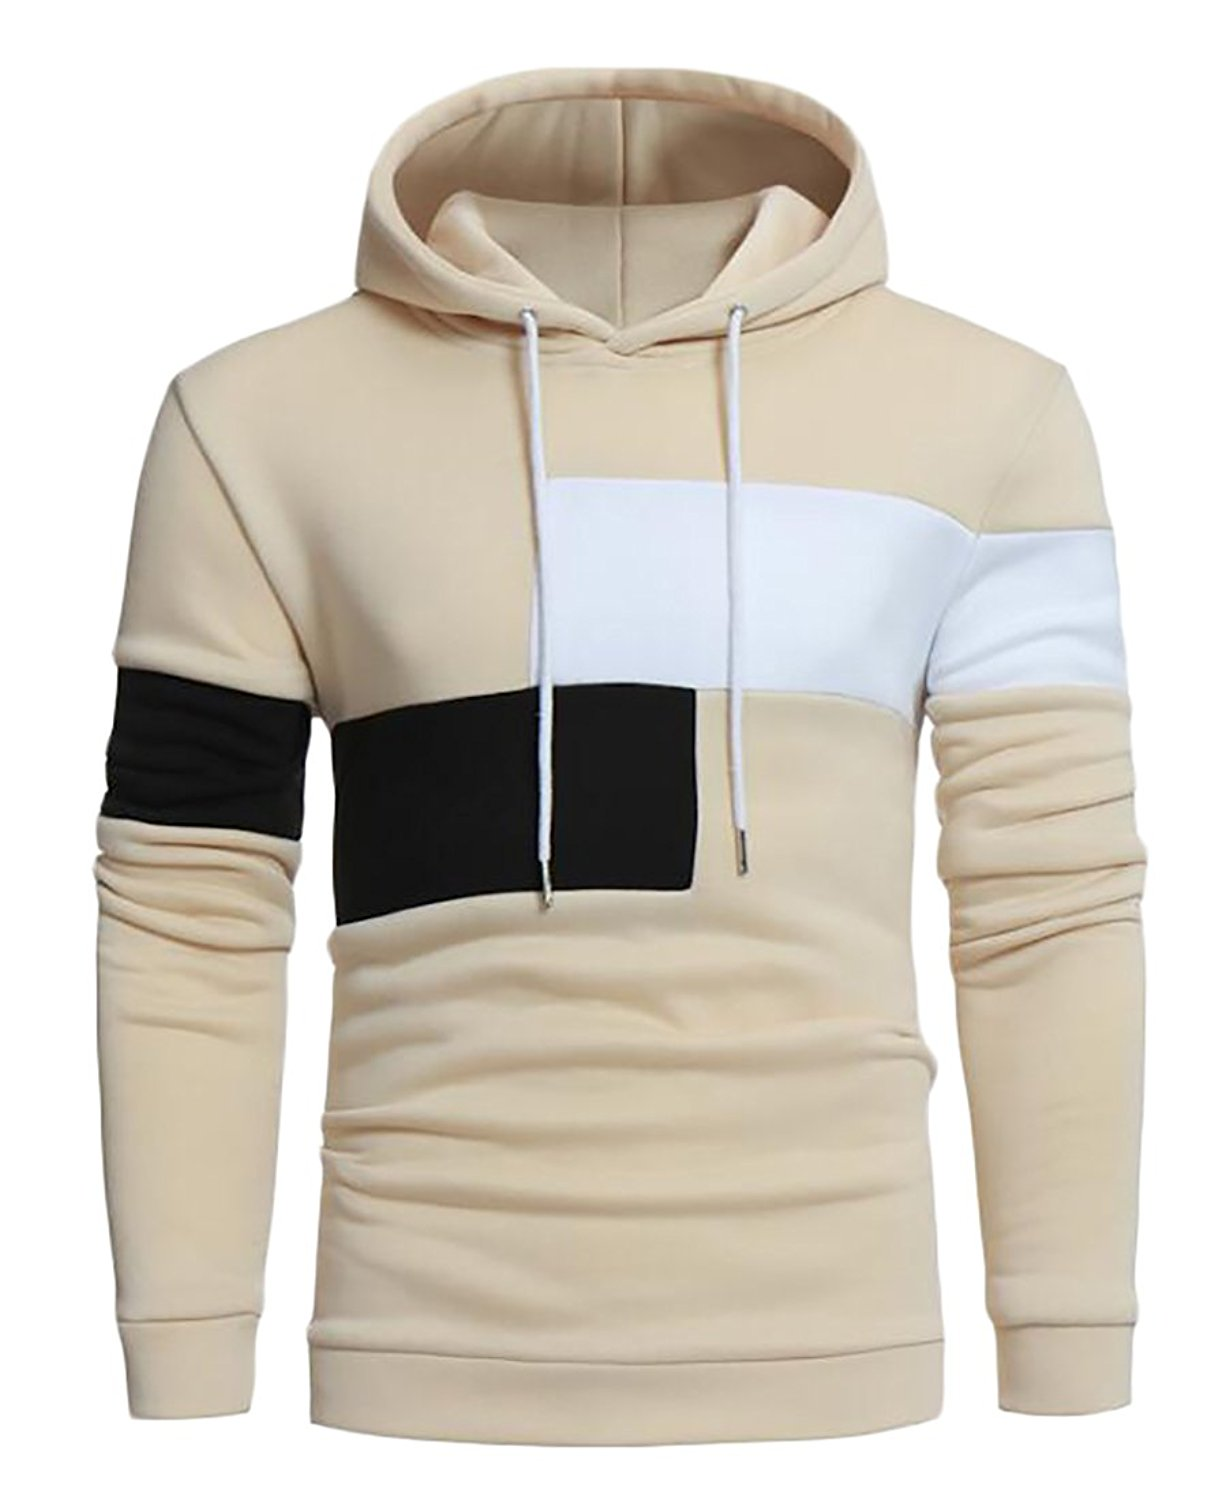 Oberora Mens Fashion Solid Color Athletic Pullover Hooded Sweatshirts